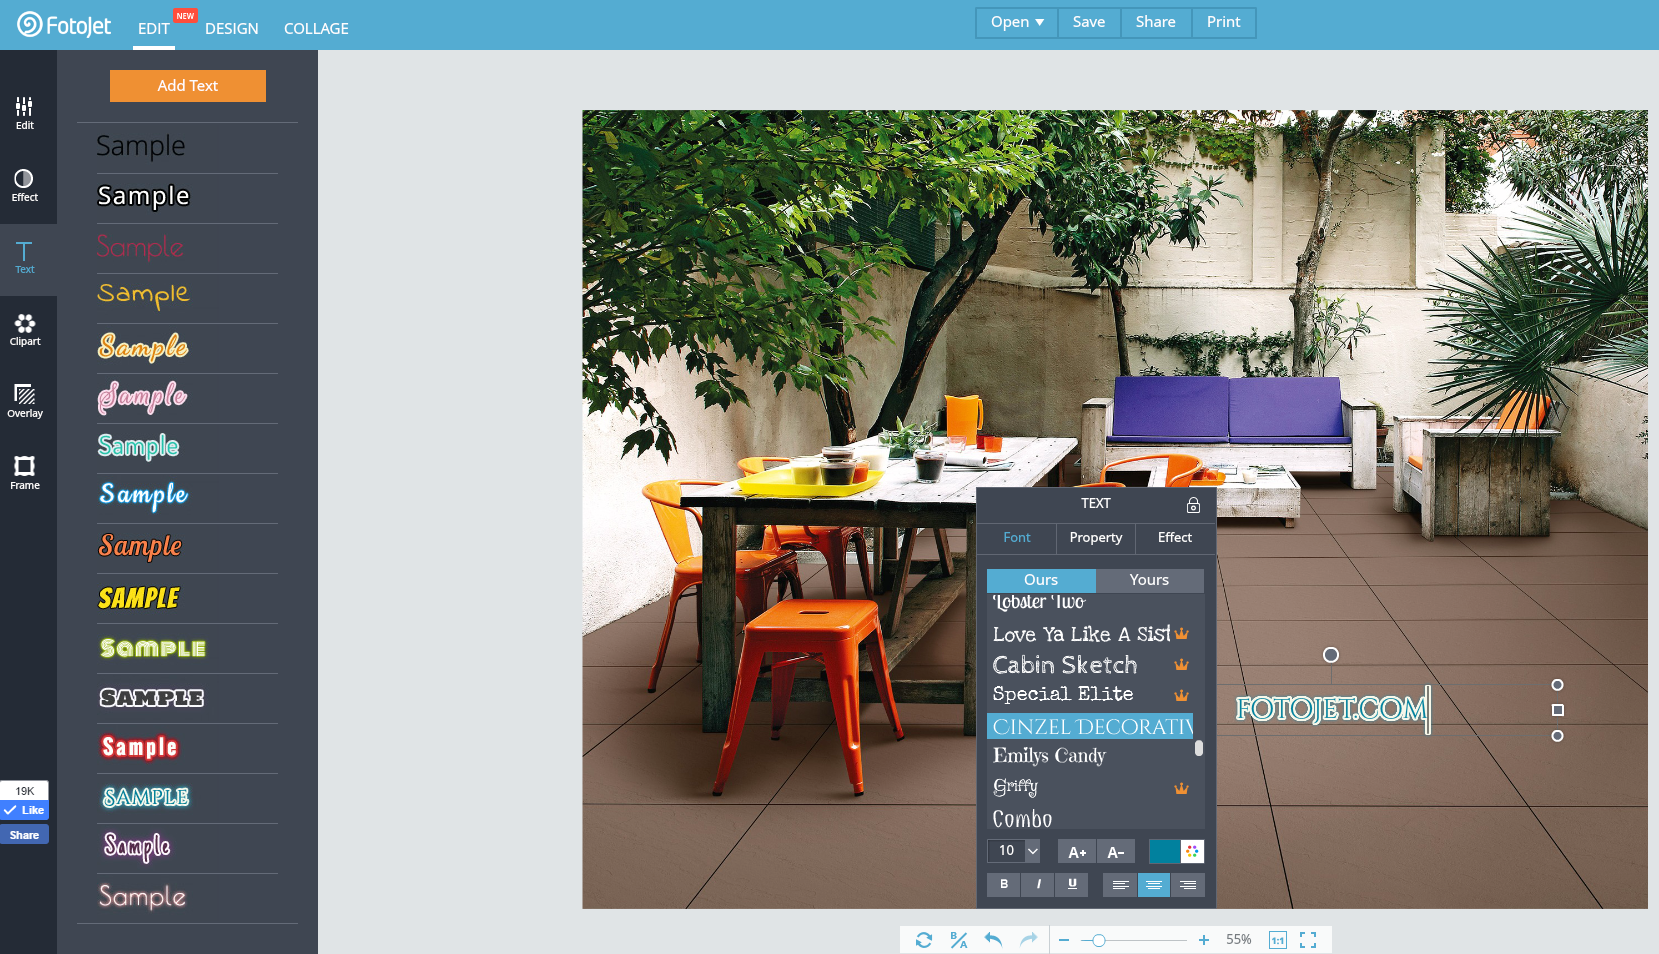 FotoJet's Photo Editor Makes Online Photo Editing Easy.